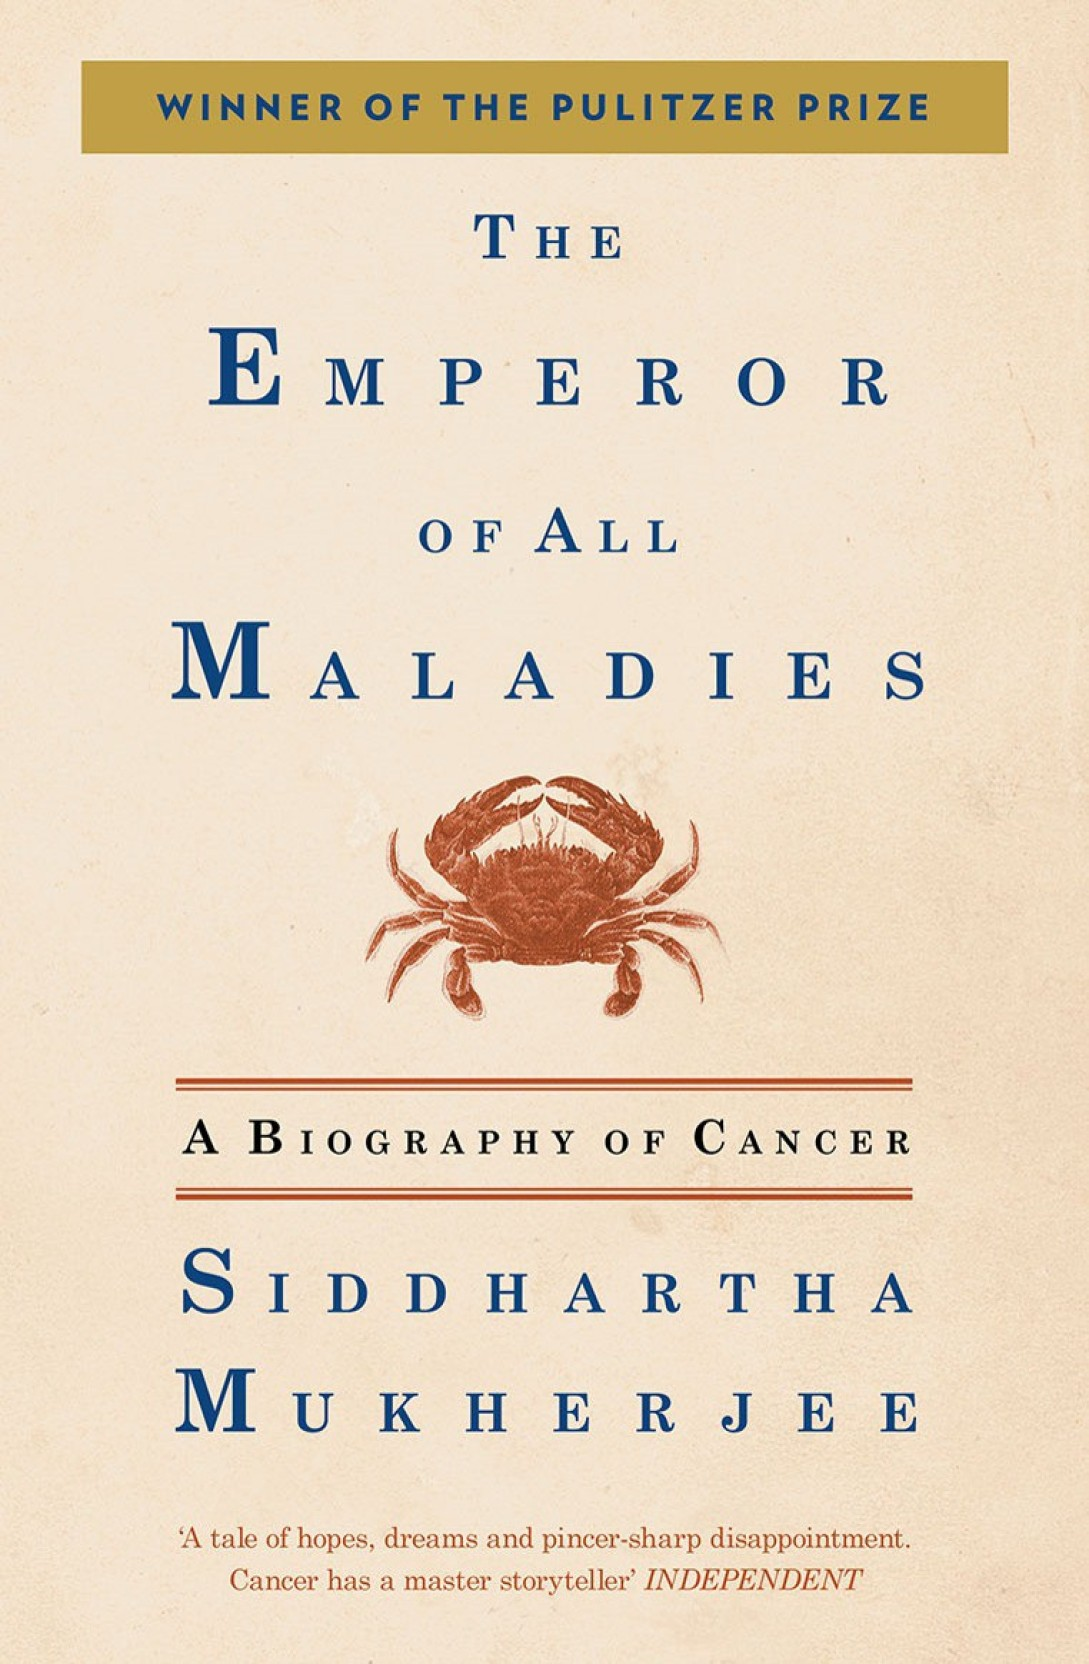 The Emperor Of Maladies : A Biography Of Cancer Add To Cart